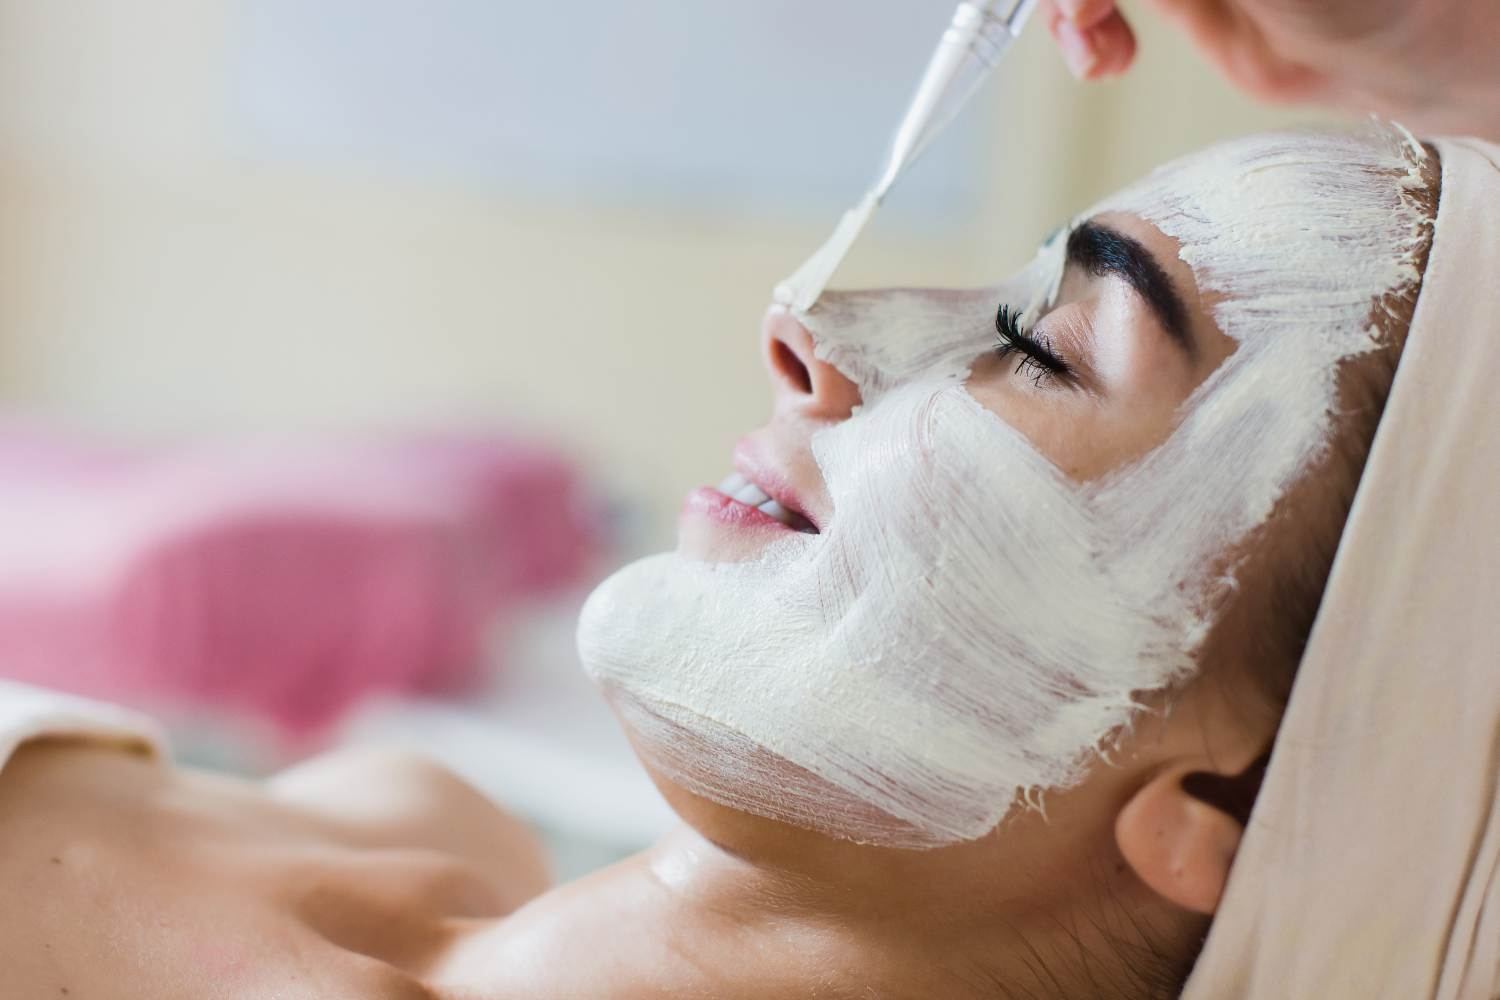 women with chemical peel treatment on her face